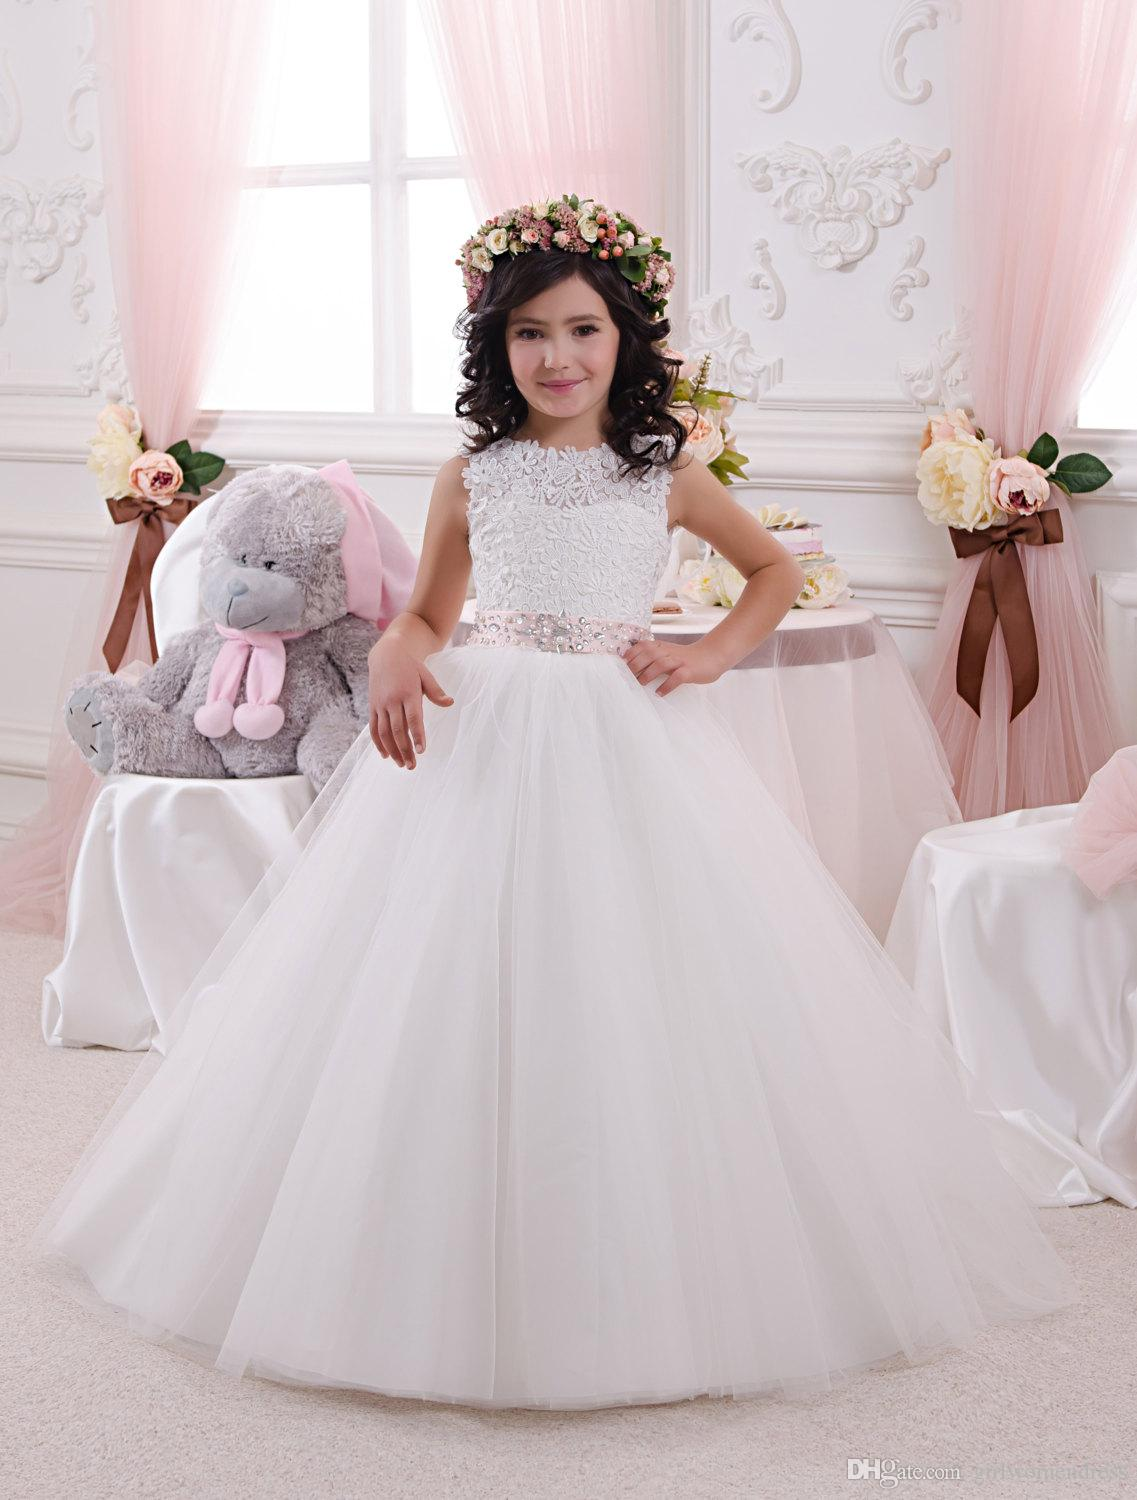 2017 2017 new hot design tulle lace flower girl dress wedding 2017 new hot design tulle lace flower girl dress wedding party dress prom clothes festival dress ivory sleeveless lace top beaded sashes ombrellifo Images